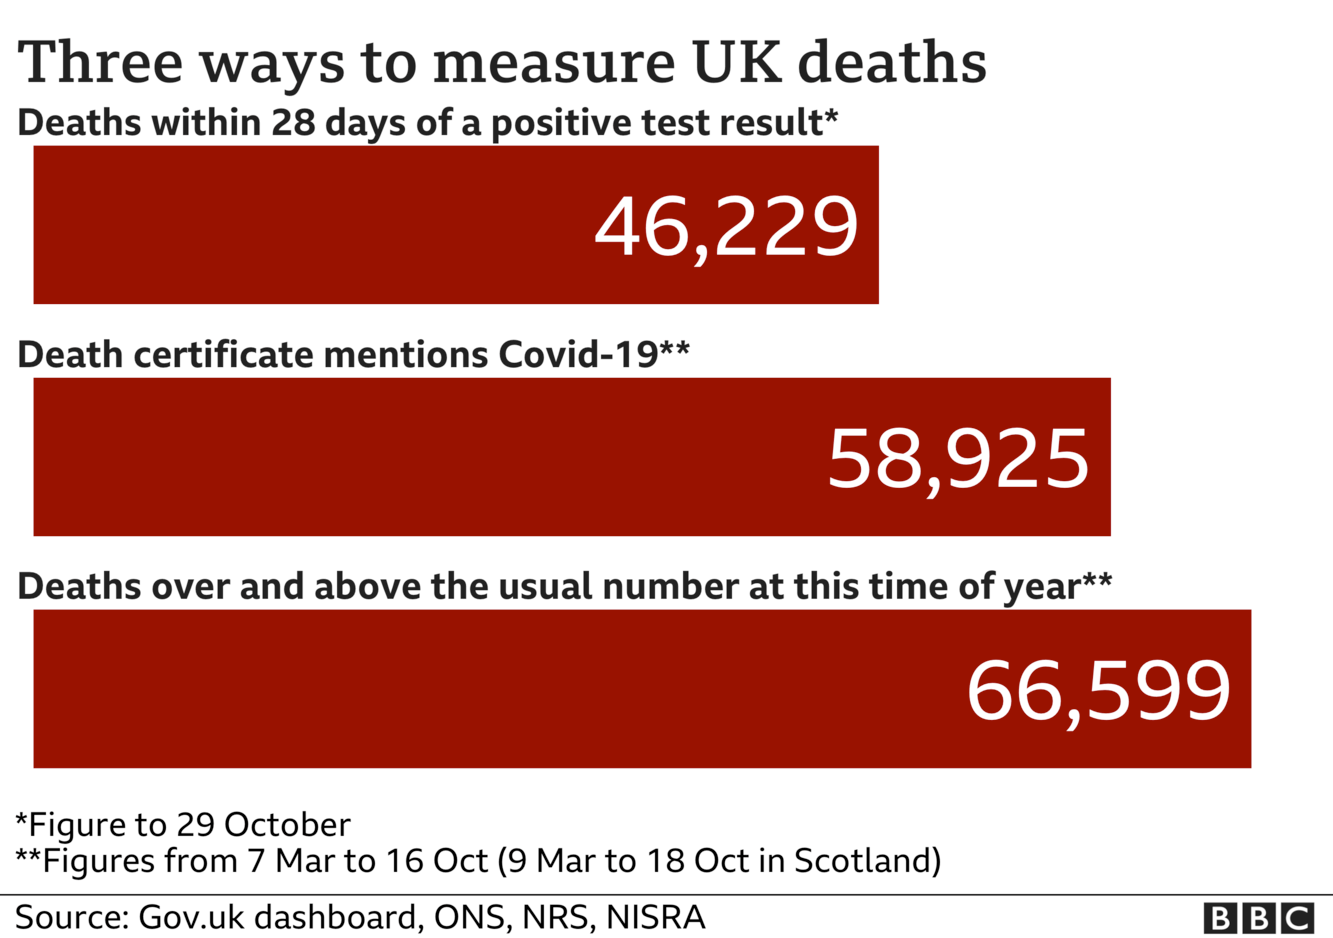 Chart shows three ways of measuring coronavirus deaths - government statistics count everyone who dies withint 28 days of a positive test, the total is now 46,229, ONS stats include everyone where coronavirus was mentioned on the death certificate and that total is now 58,925, the final total includes all excess deaths over and above the usual number and that is now 66,599